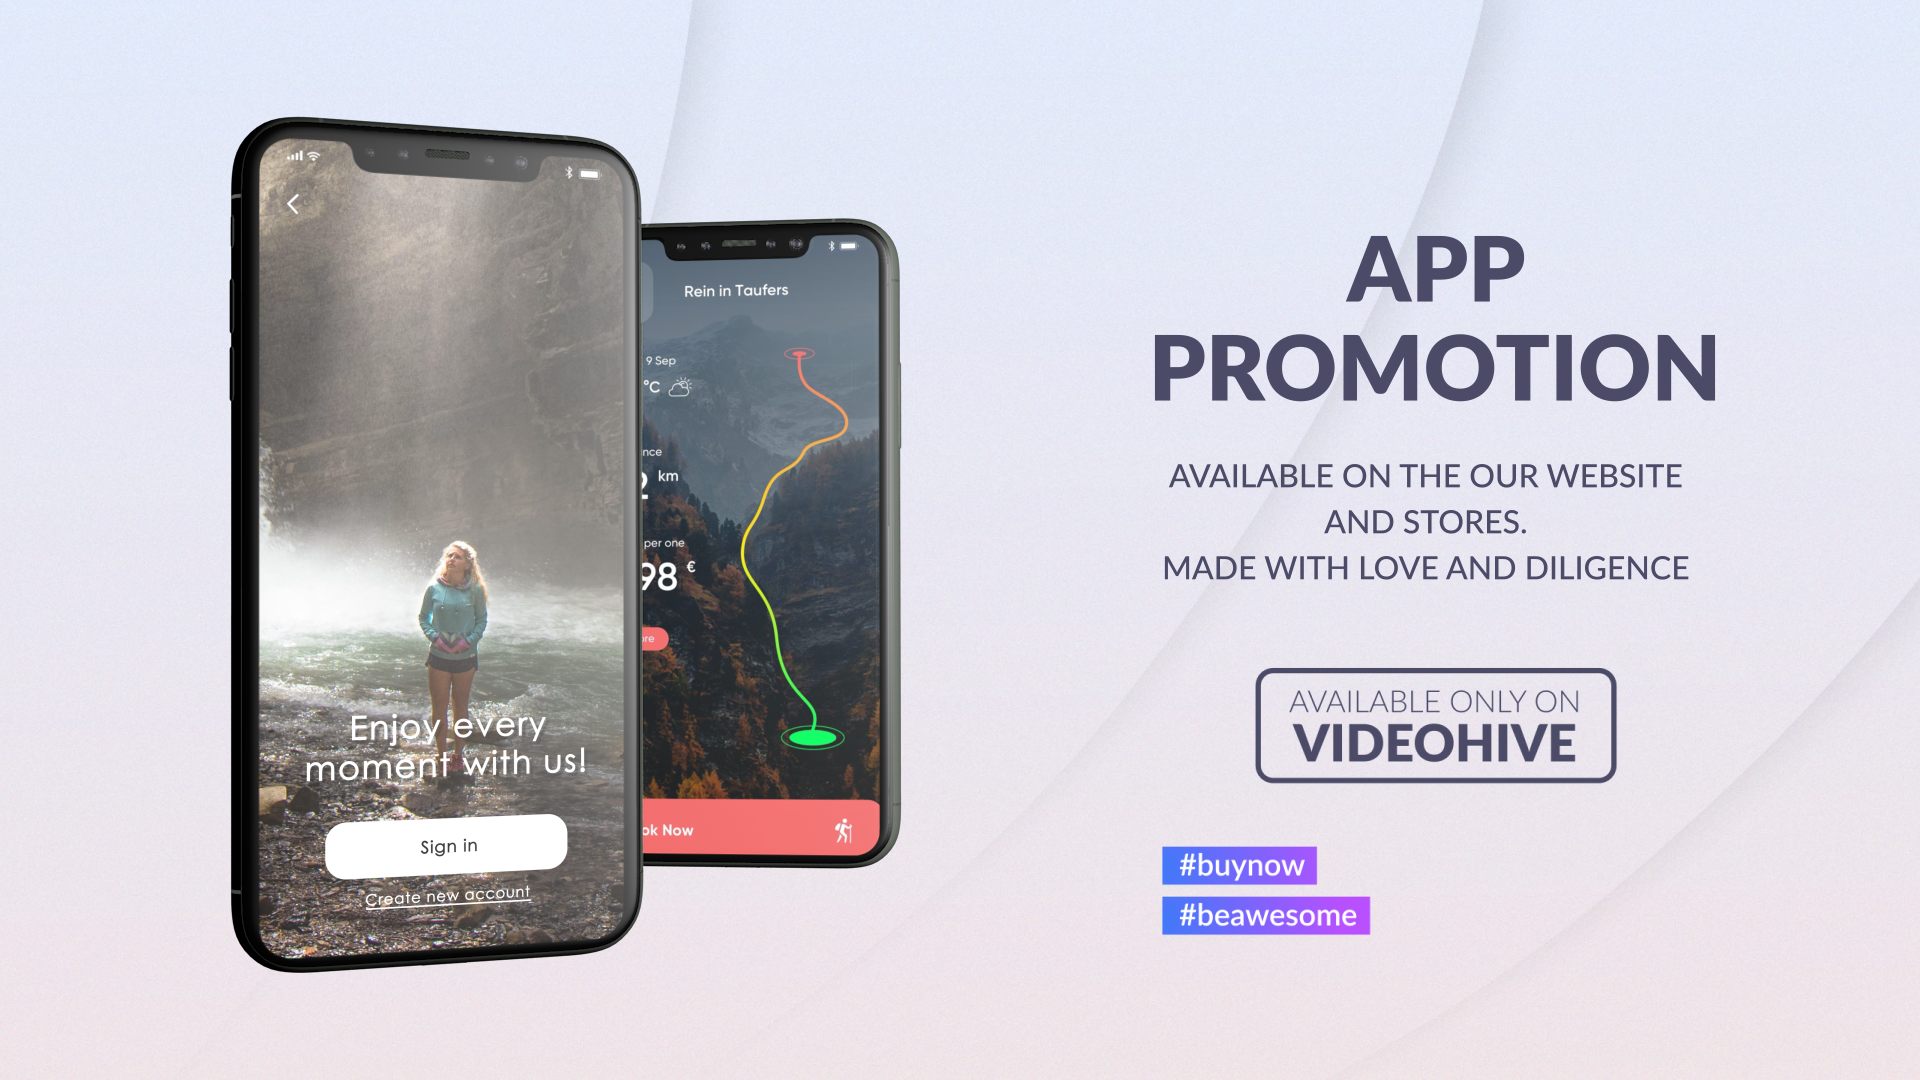 Iphone App Promotion - 5